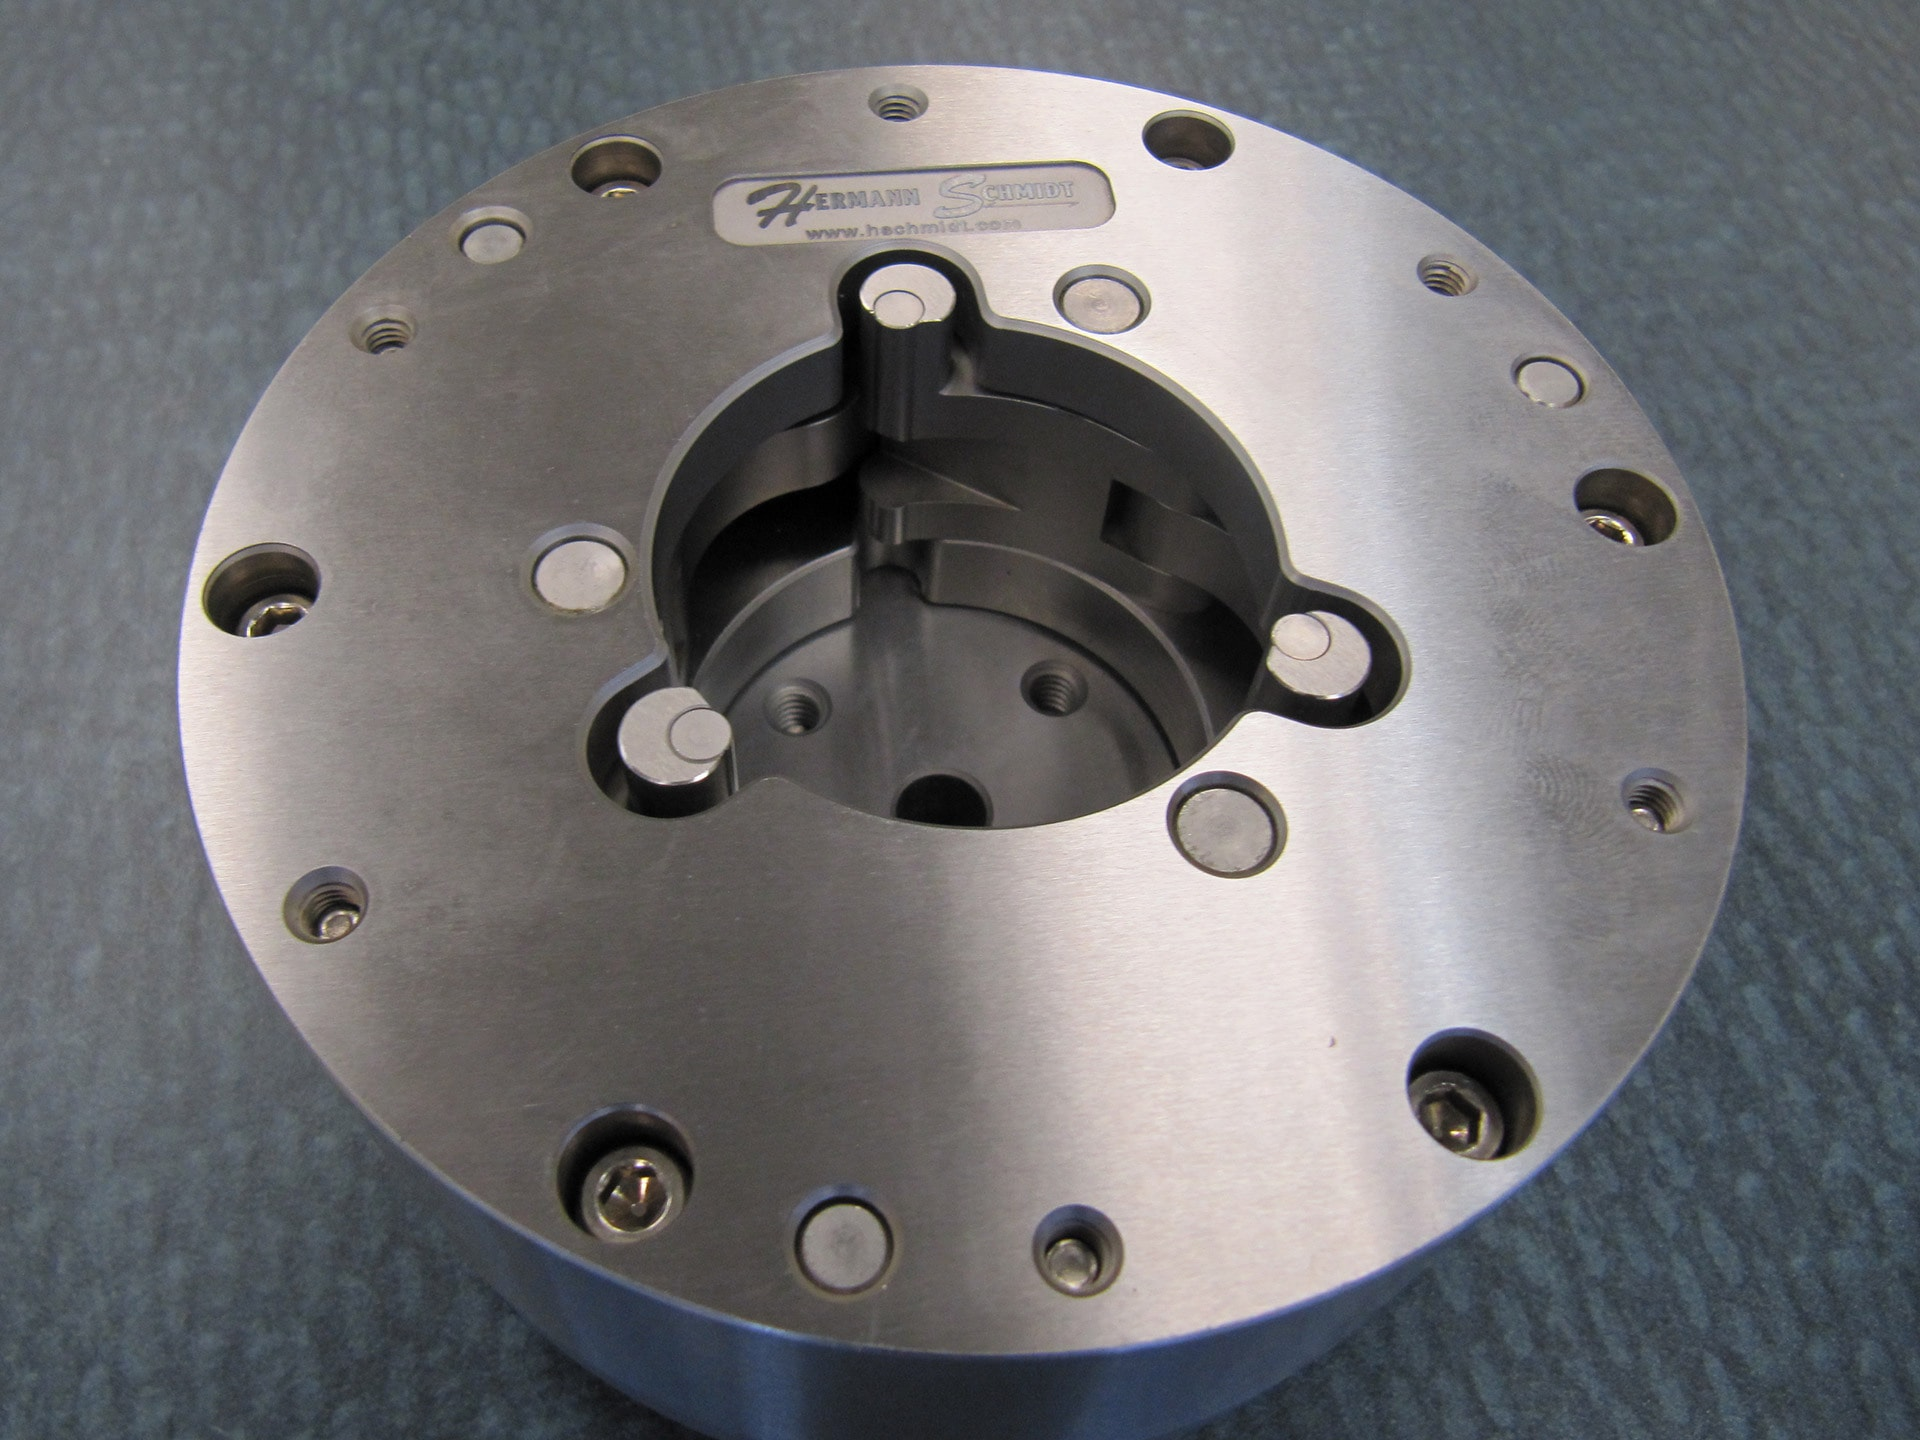 Larger Three Jaw Chuck On System 3r Macro Pallet Hermann